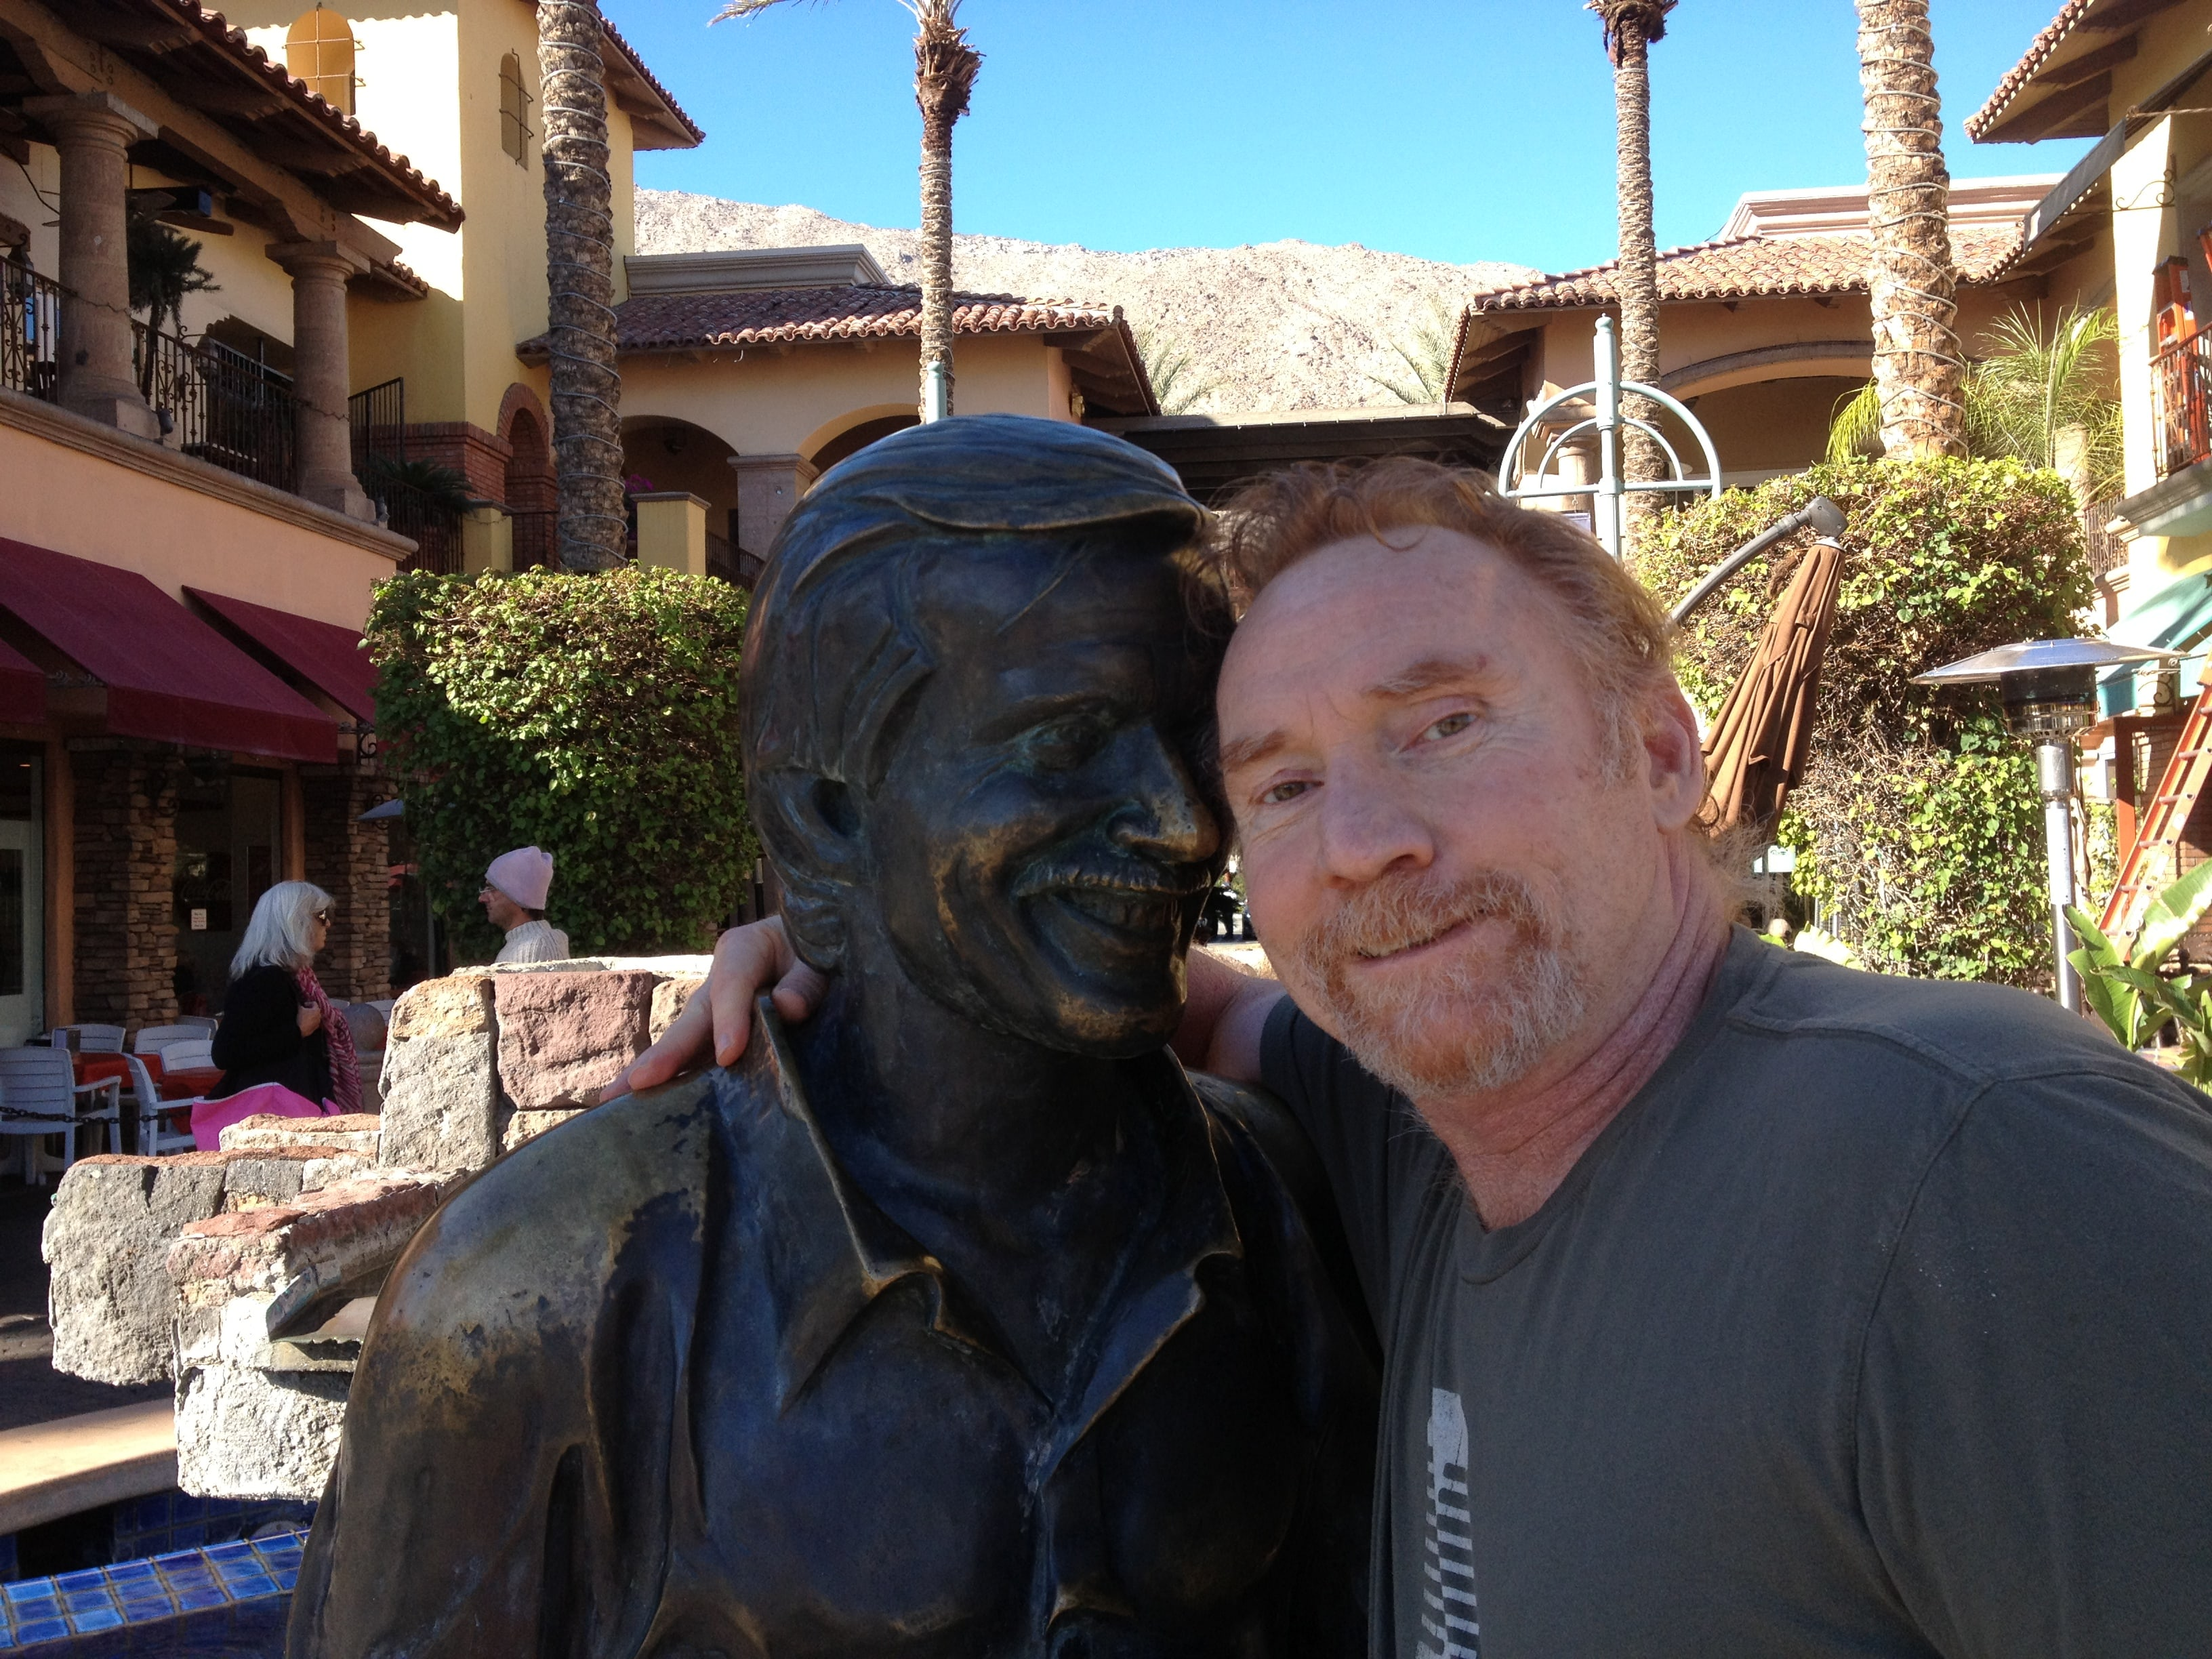 Danny Bonaduce Download